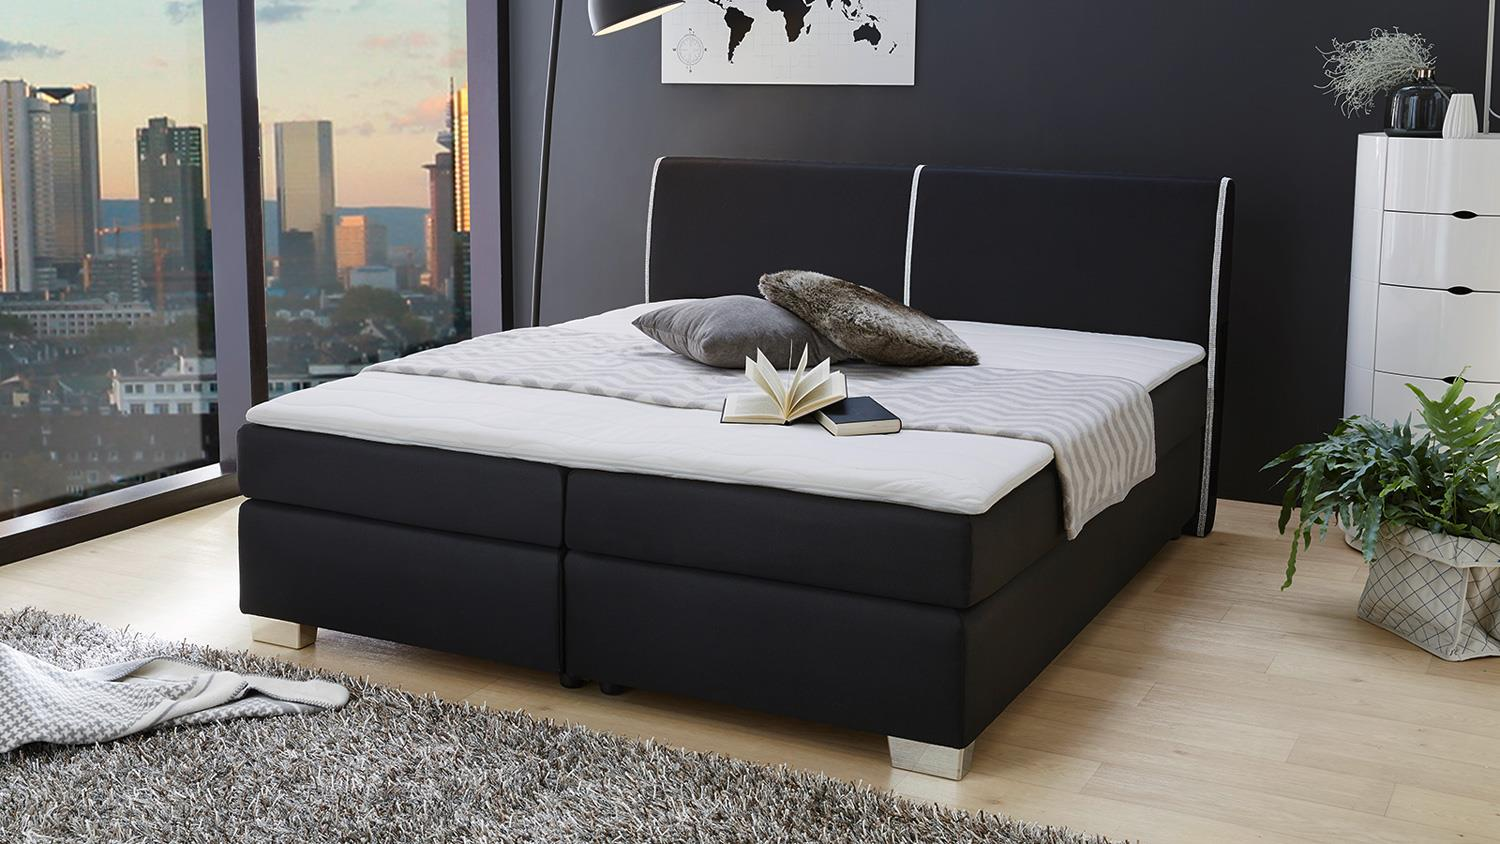 boxspringbett sally bett in schwarz f r schlafzimmer mit. Black Bedroom Furniture Sets. Home Design Ideas